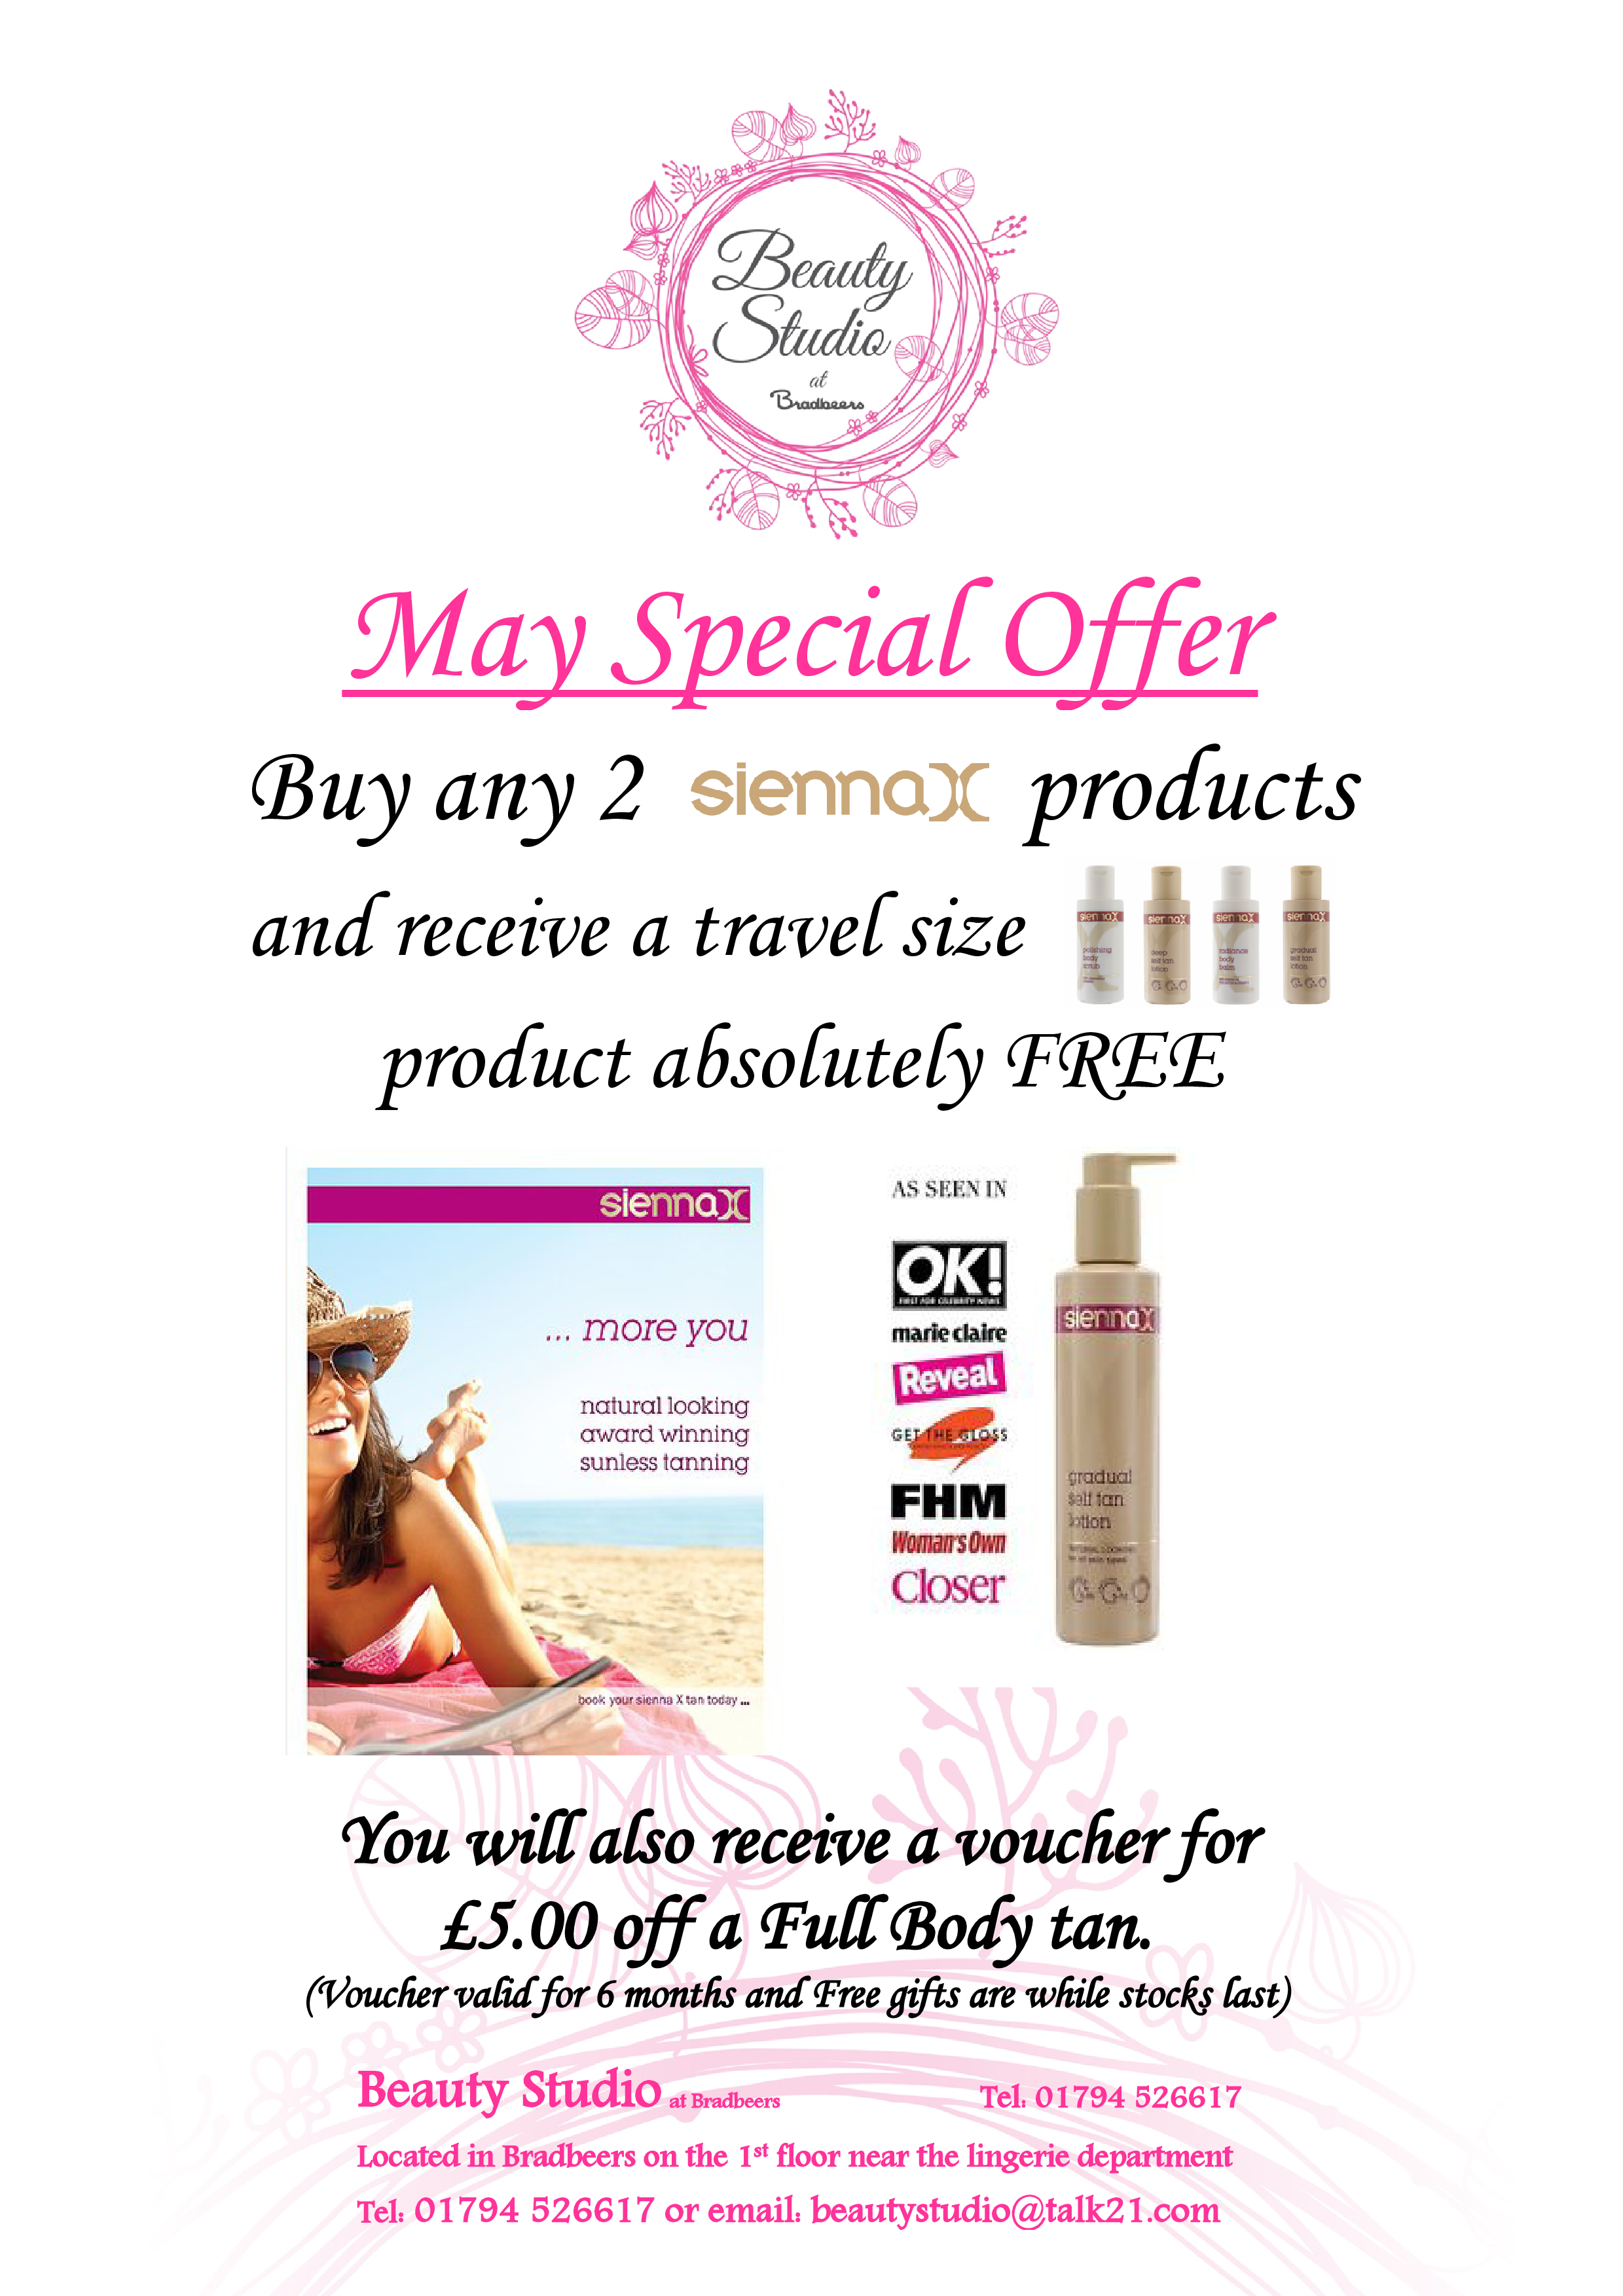 5. May special offer